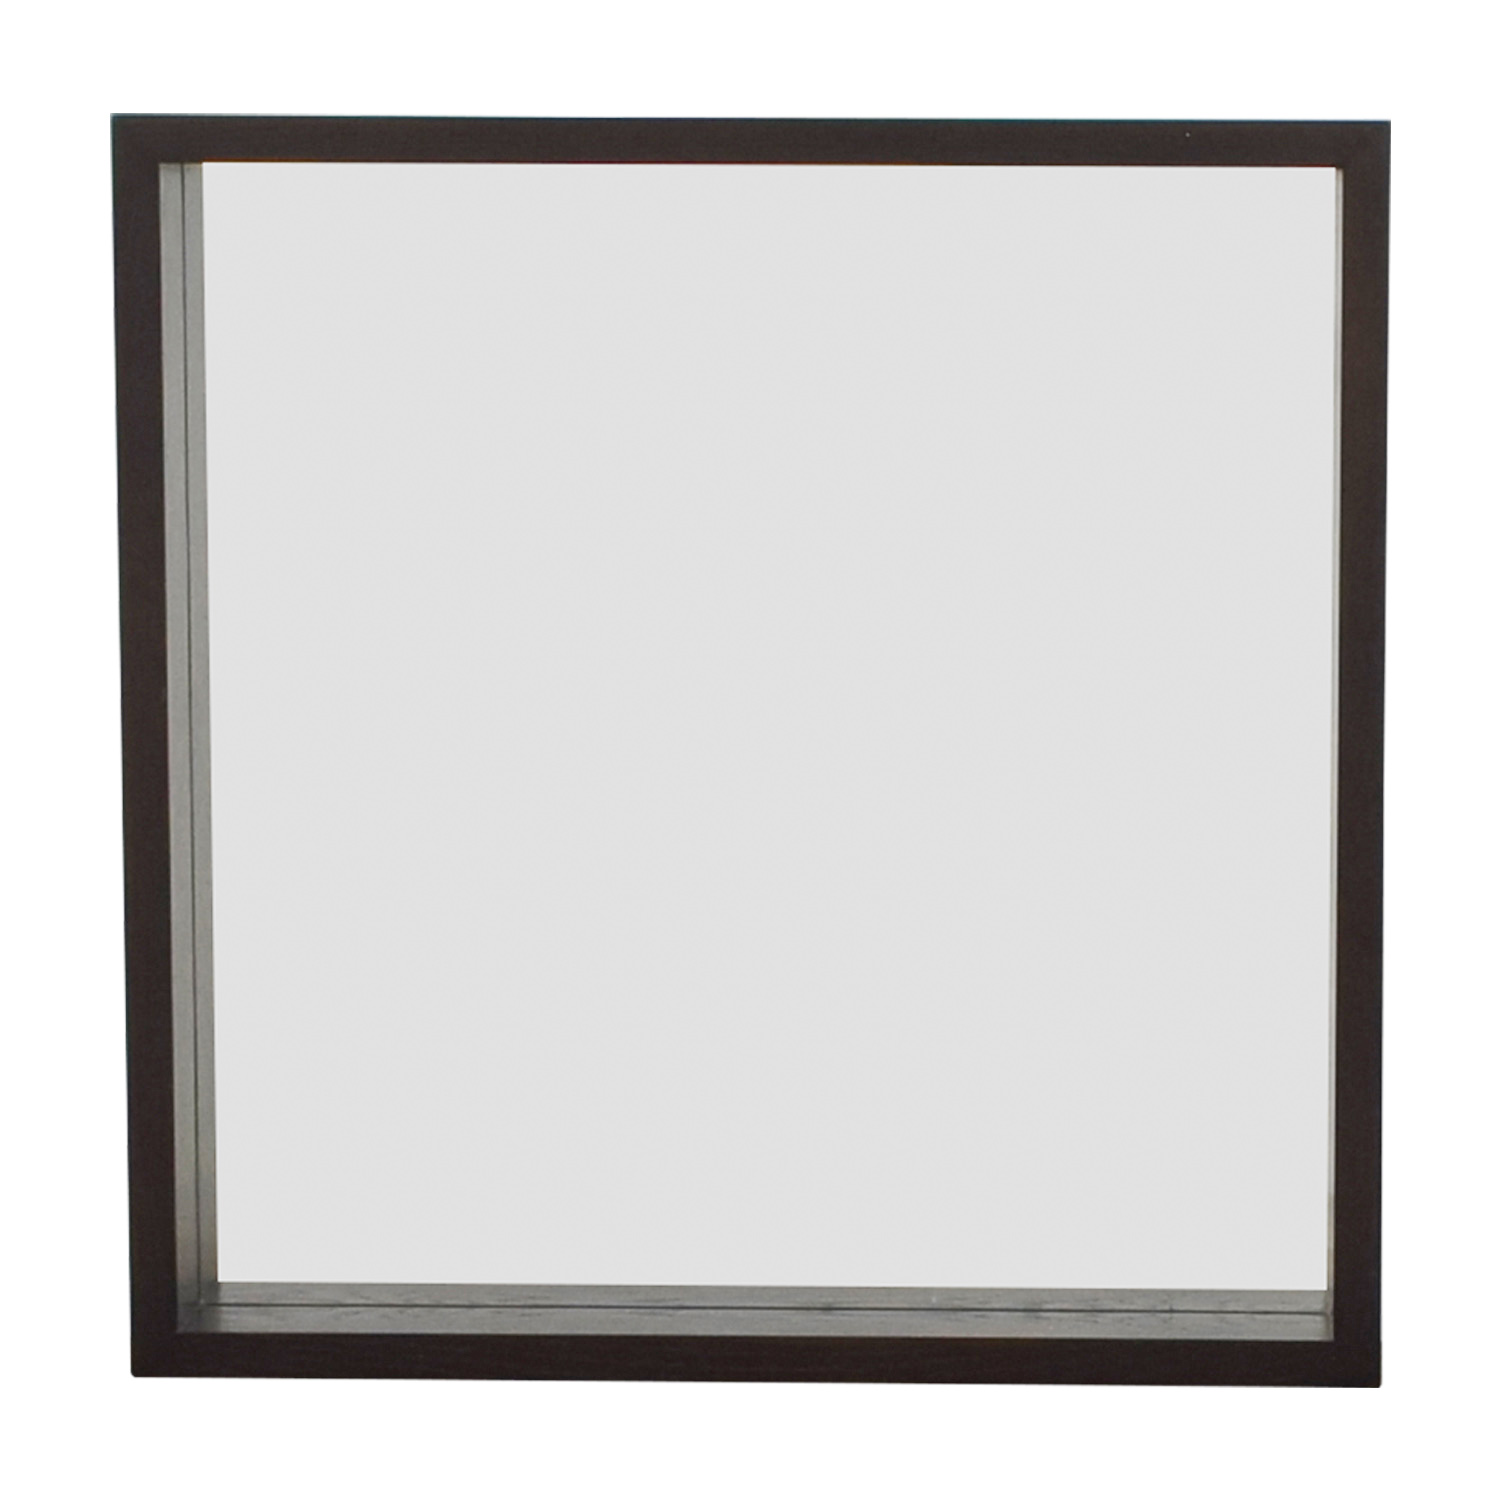 West Elm West Elm Wooden Framed Mirror coupon